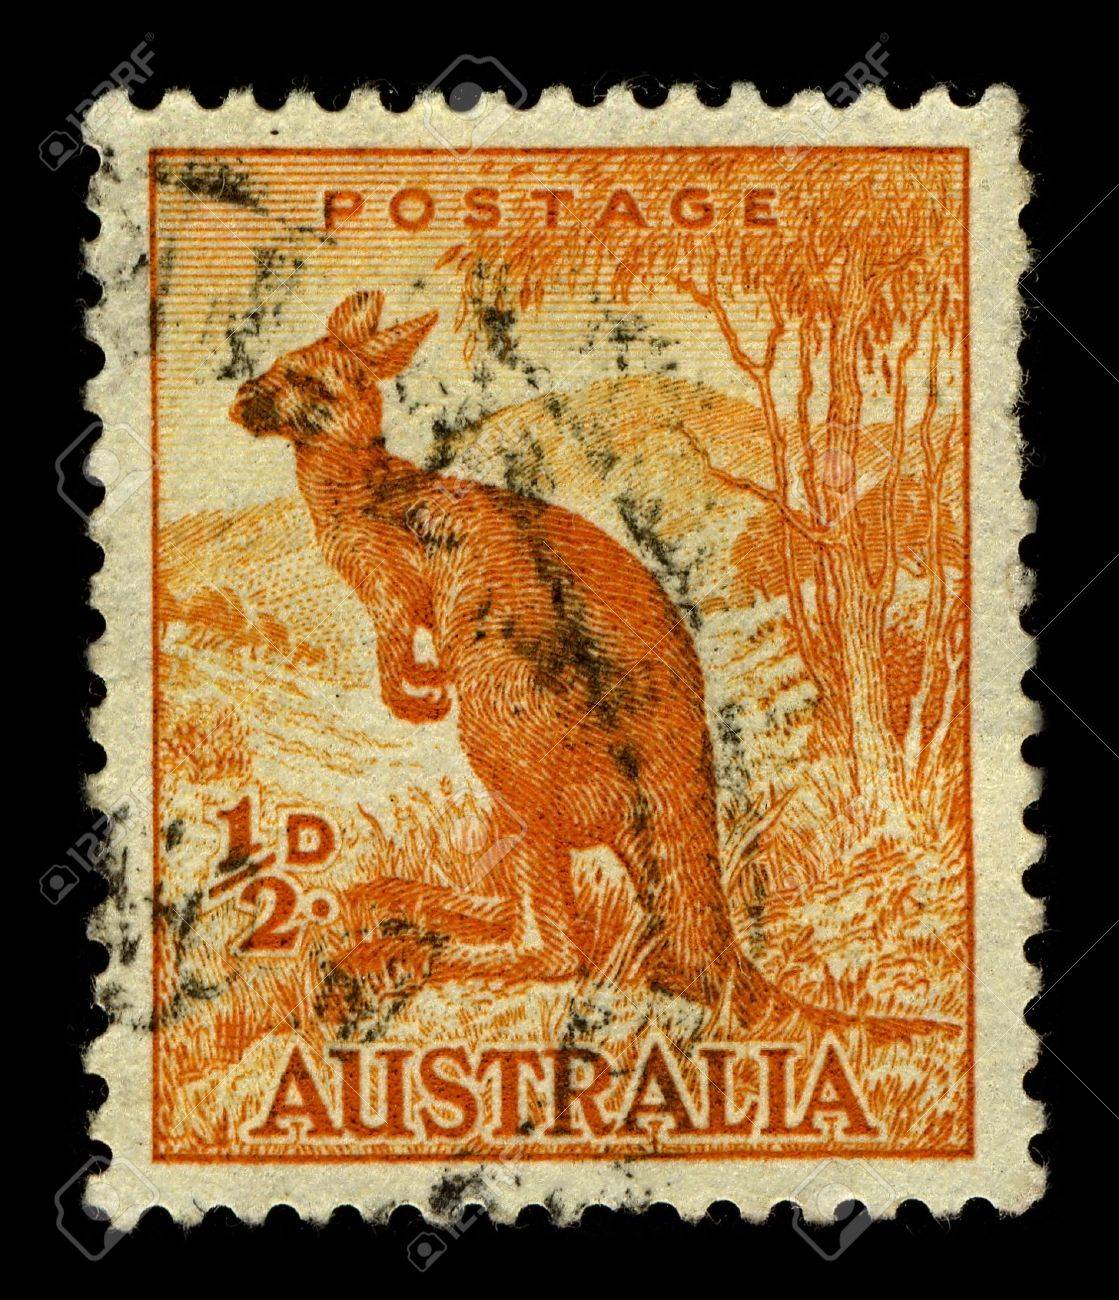 AUSTRALIA-CIRCA 1937:A stamp printed in AUSTRALIA shows image of Macropus is a marsupial genus that belongs to the family Macropodidae, it has 14 species which are further divided into 3 subgenera, circa 1937. Stock Photo - 10321630